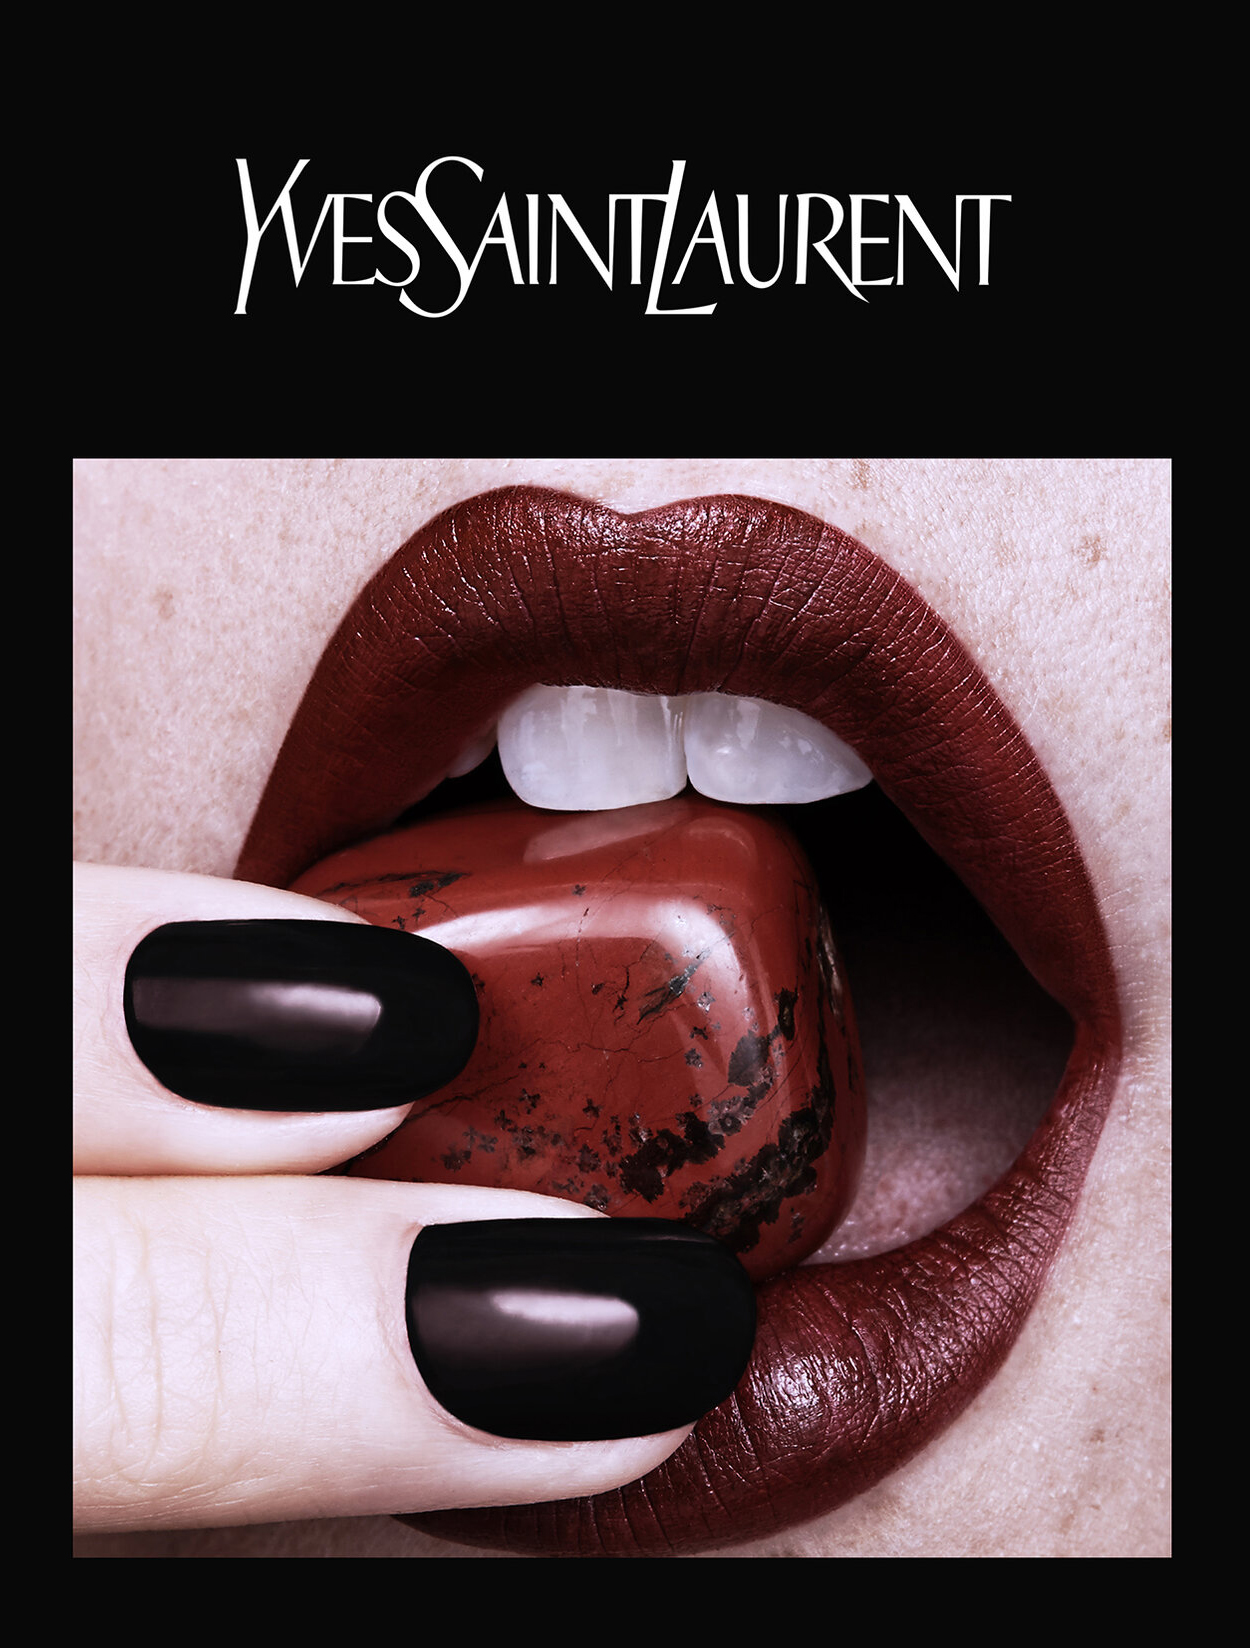 YSL Beauty, David Dunan, Stewart Gerard, Celestine Agency